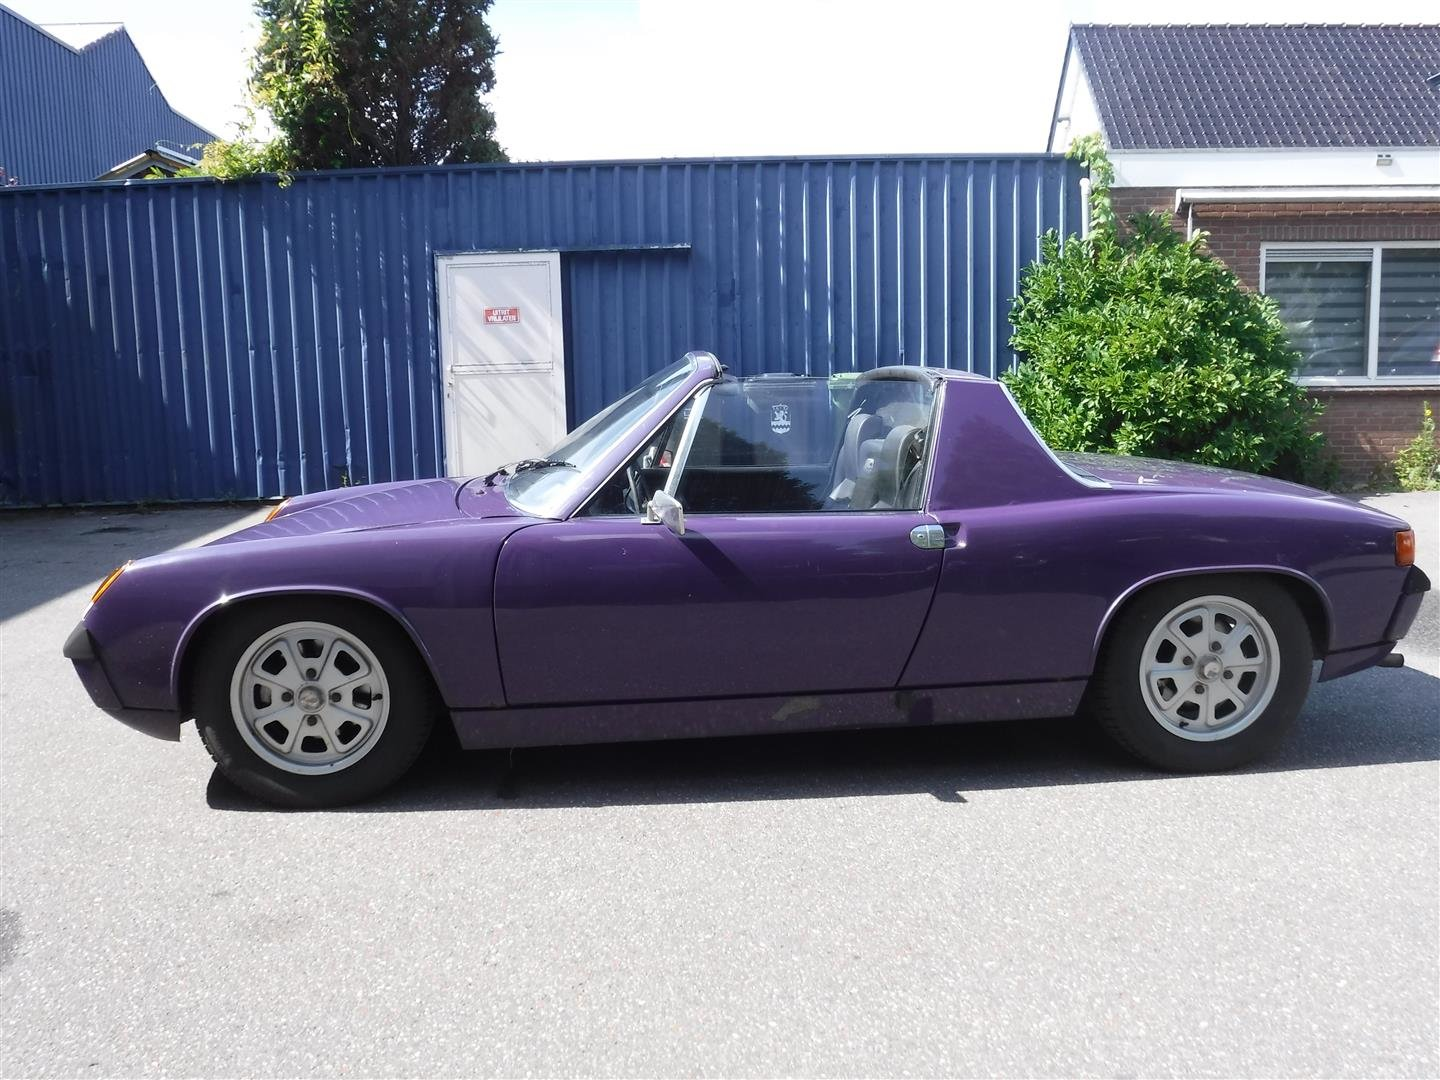 1973 Porsche 914 2.0 purple! For Sale (picture 2 of 6)